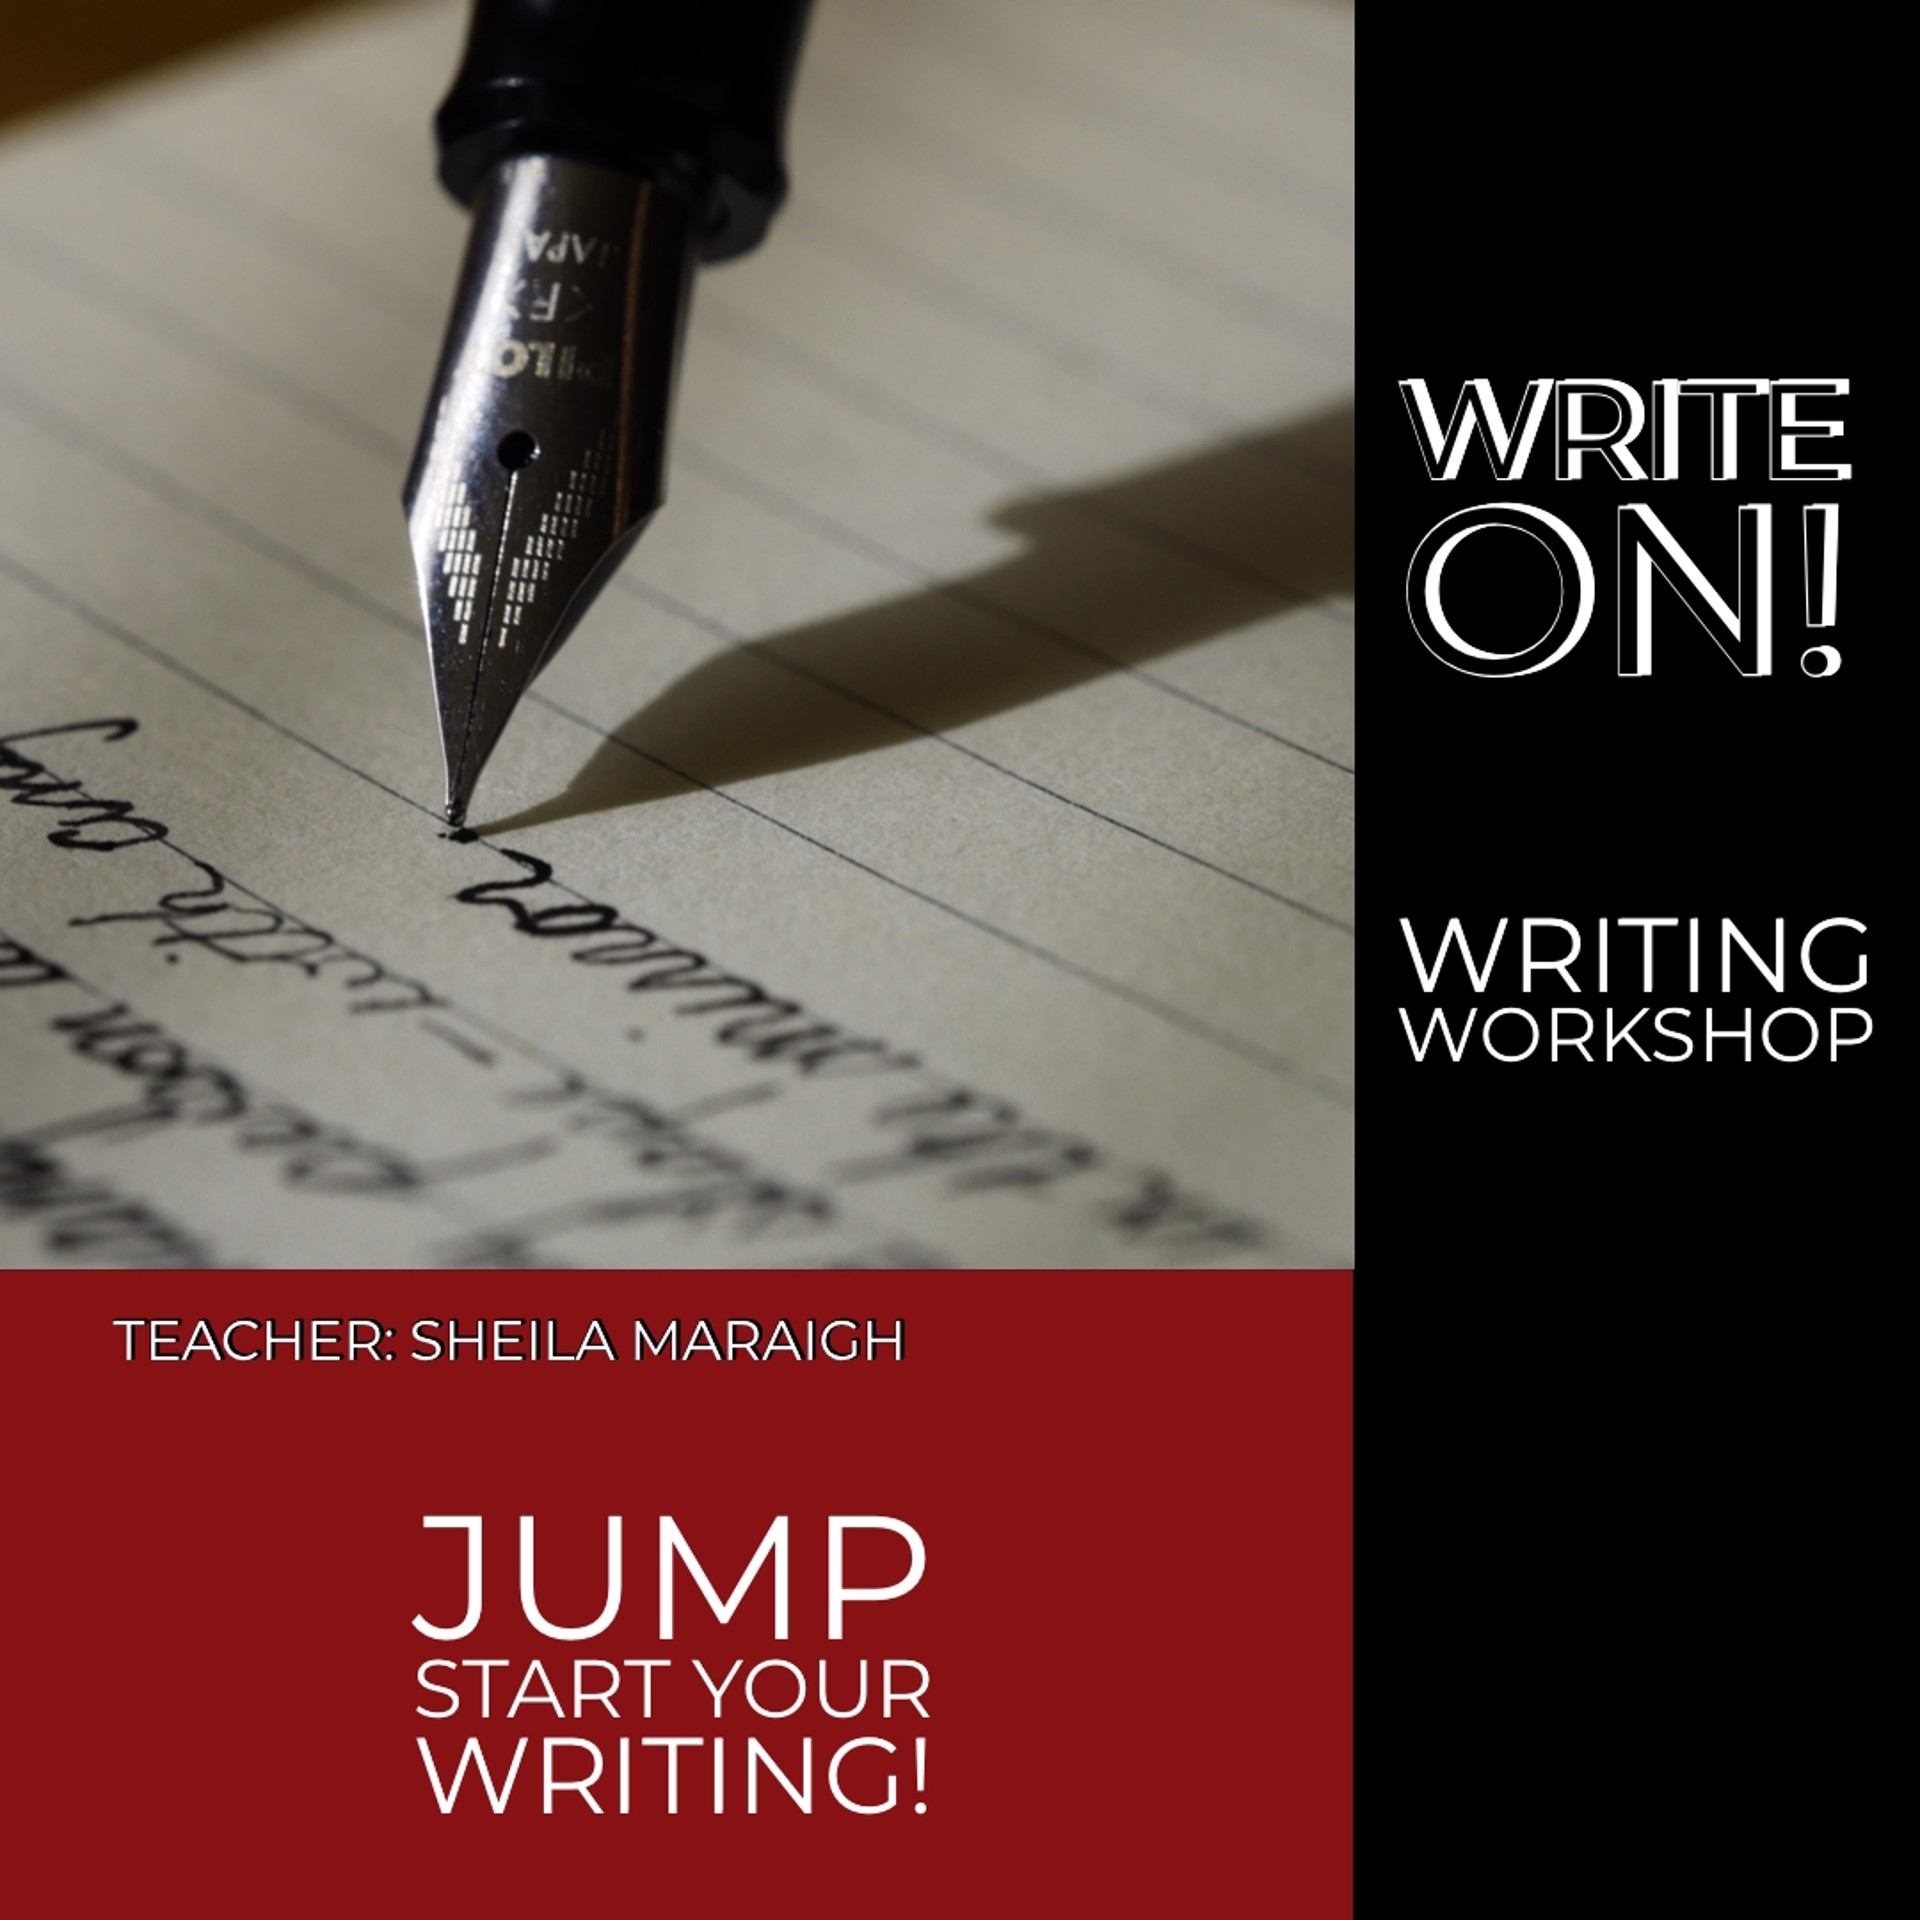 WRITE ON!   Four Week Workshop by Sheila Maraigh